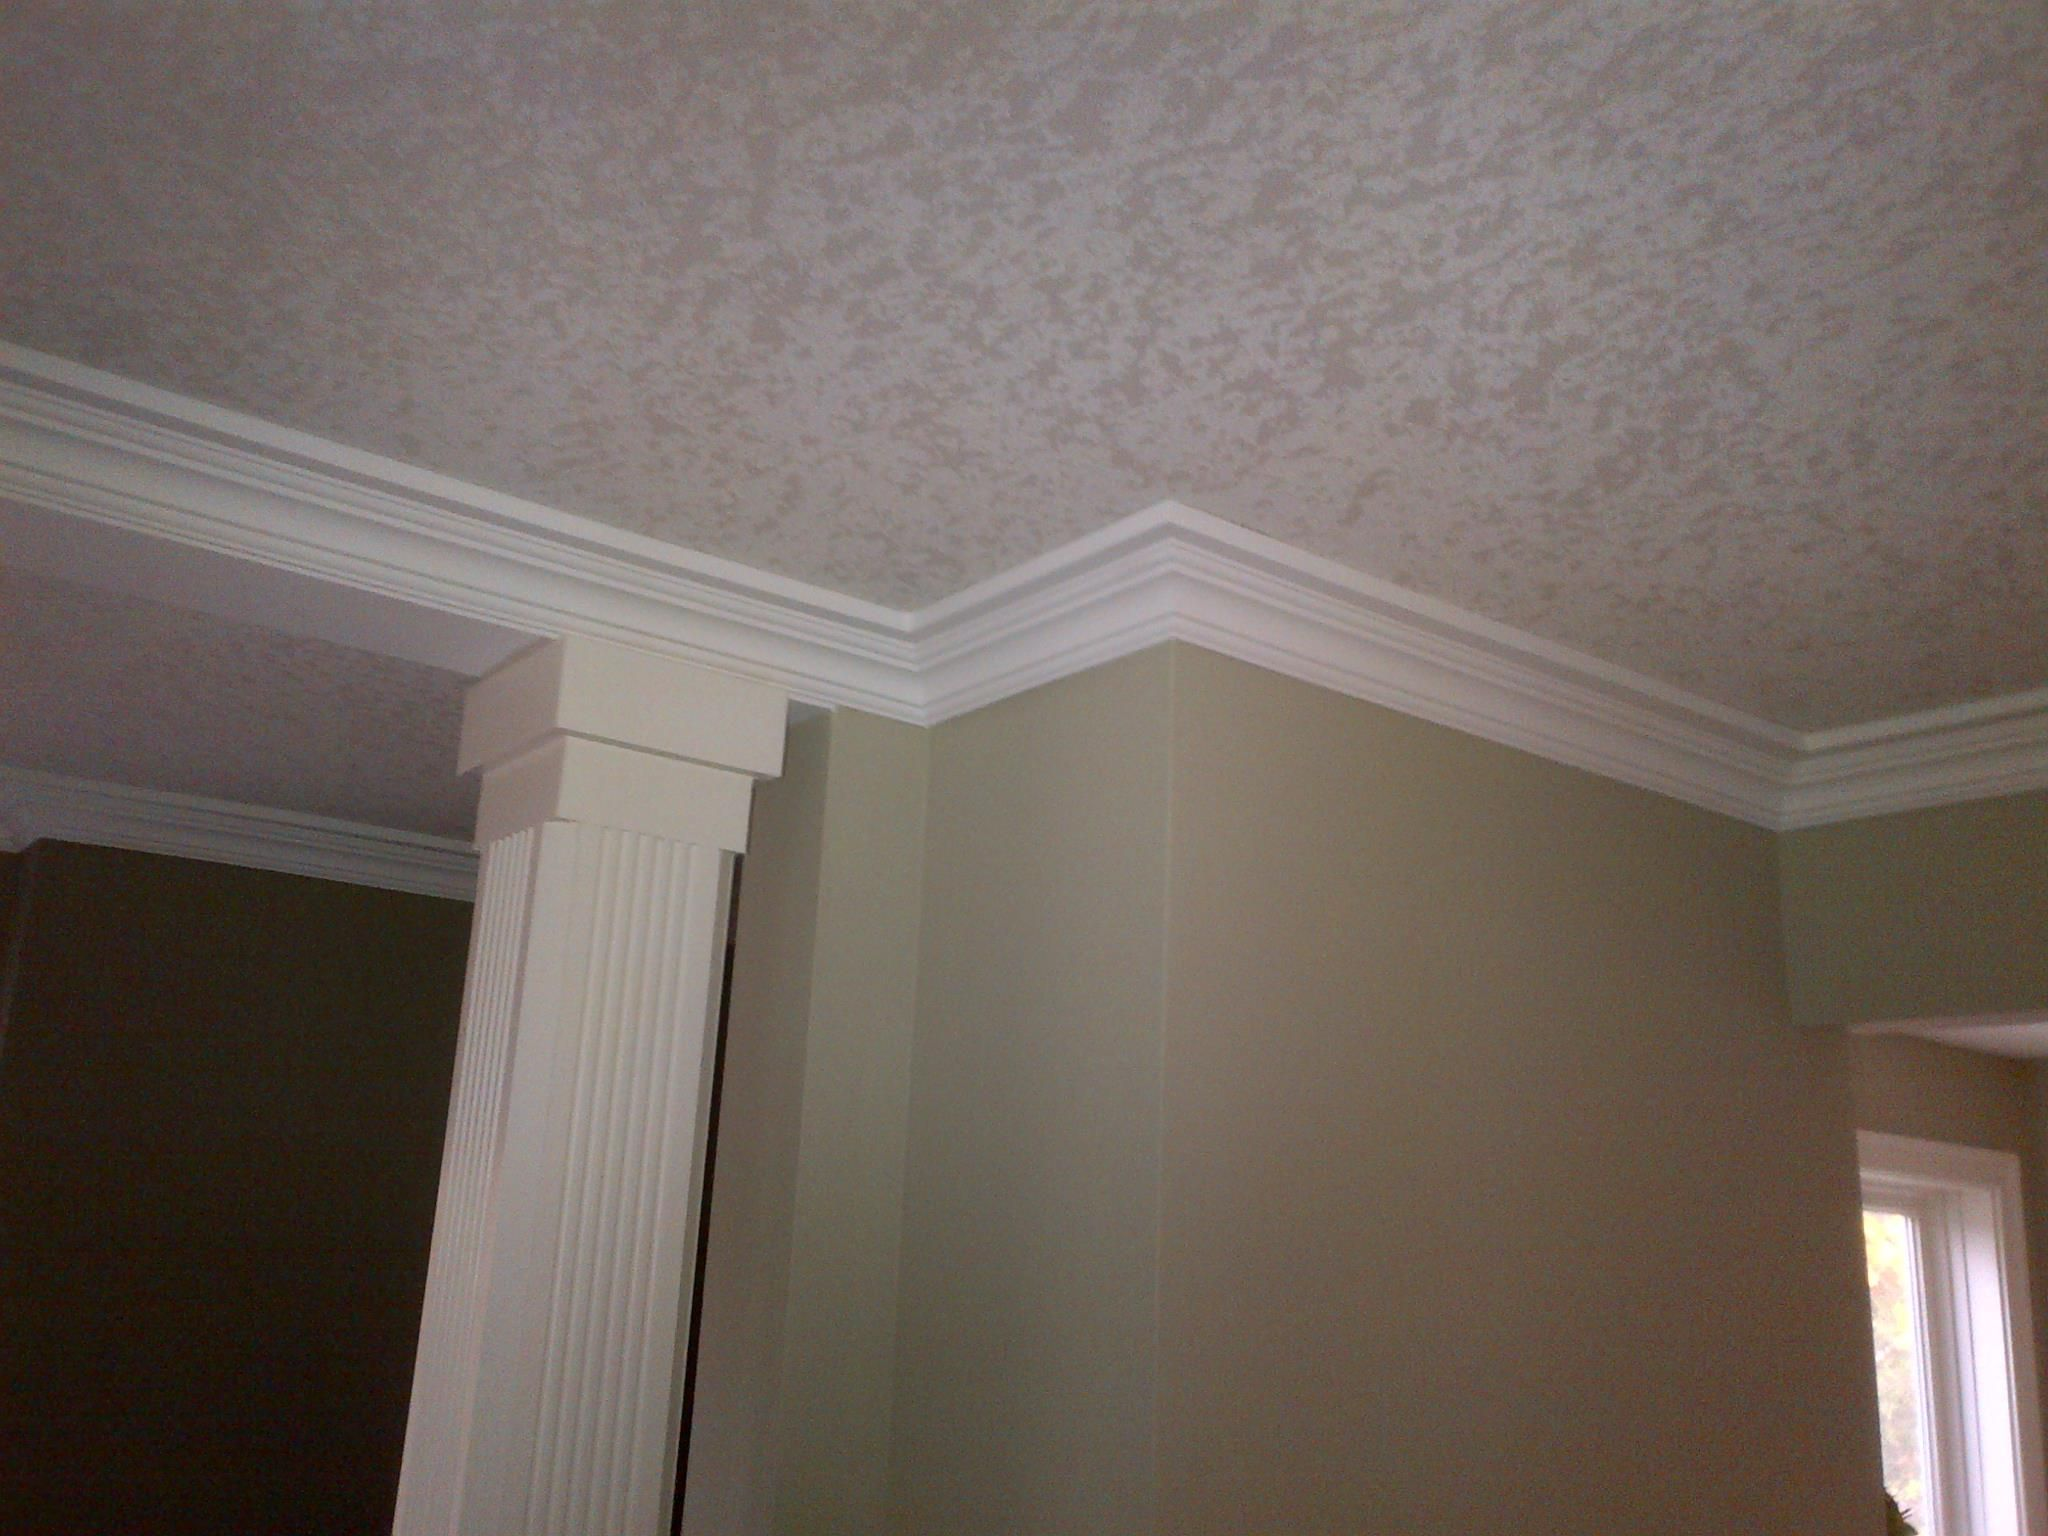 4 inch crown molding - 17 Best Images About Look Up Ceiling Ideas On Pinterest Painted Ceilings Cloud Ceiling And Stencils